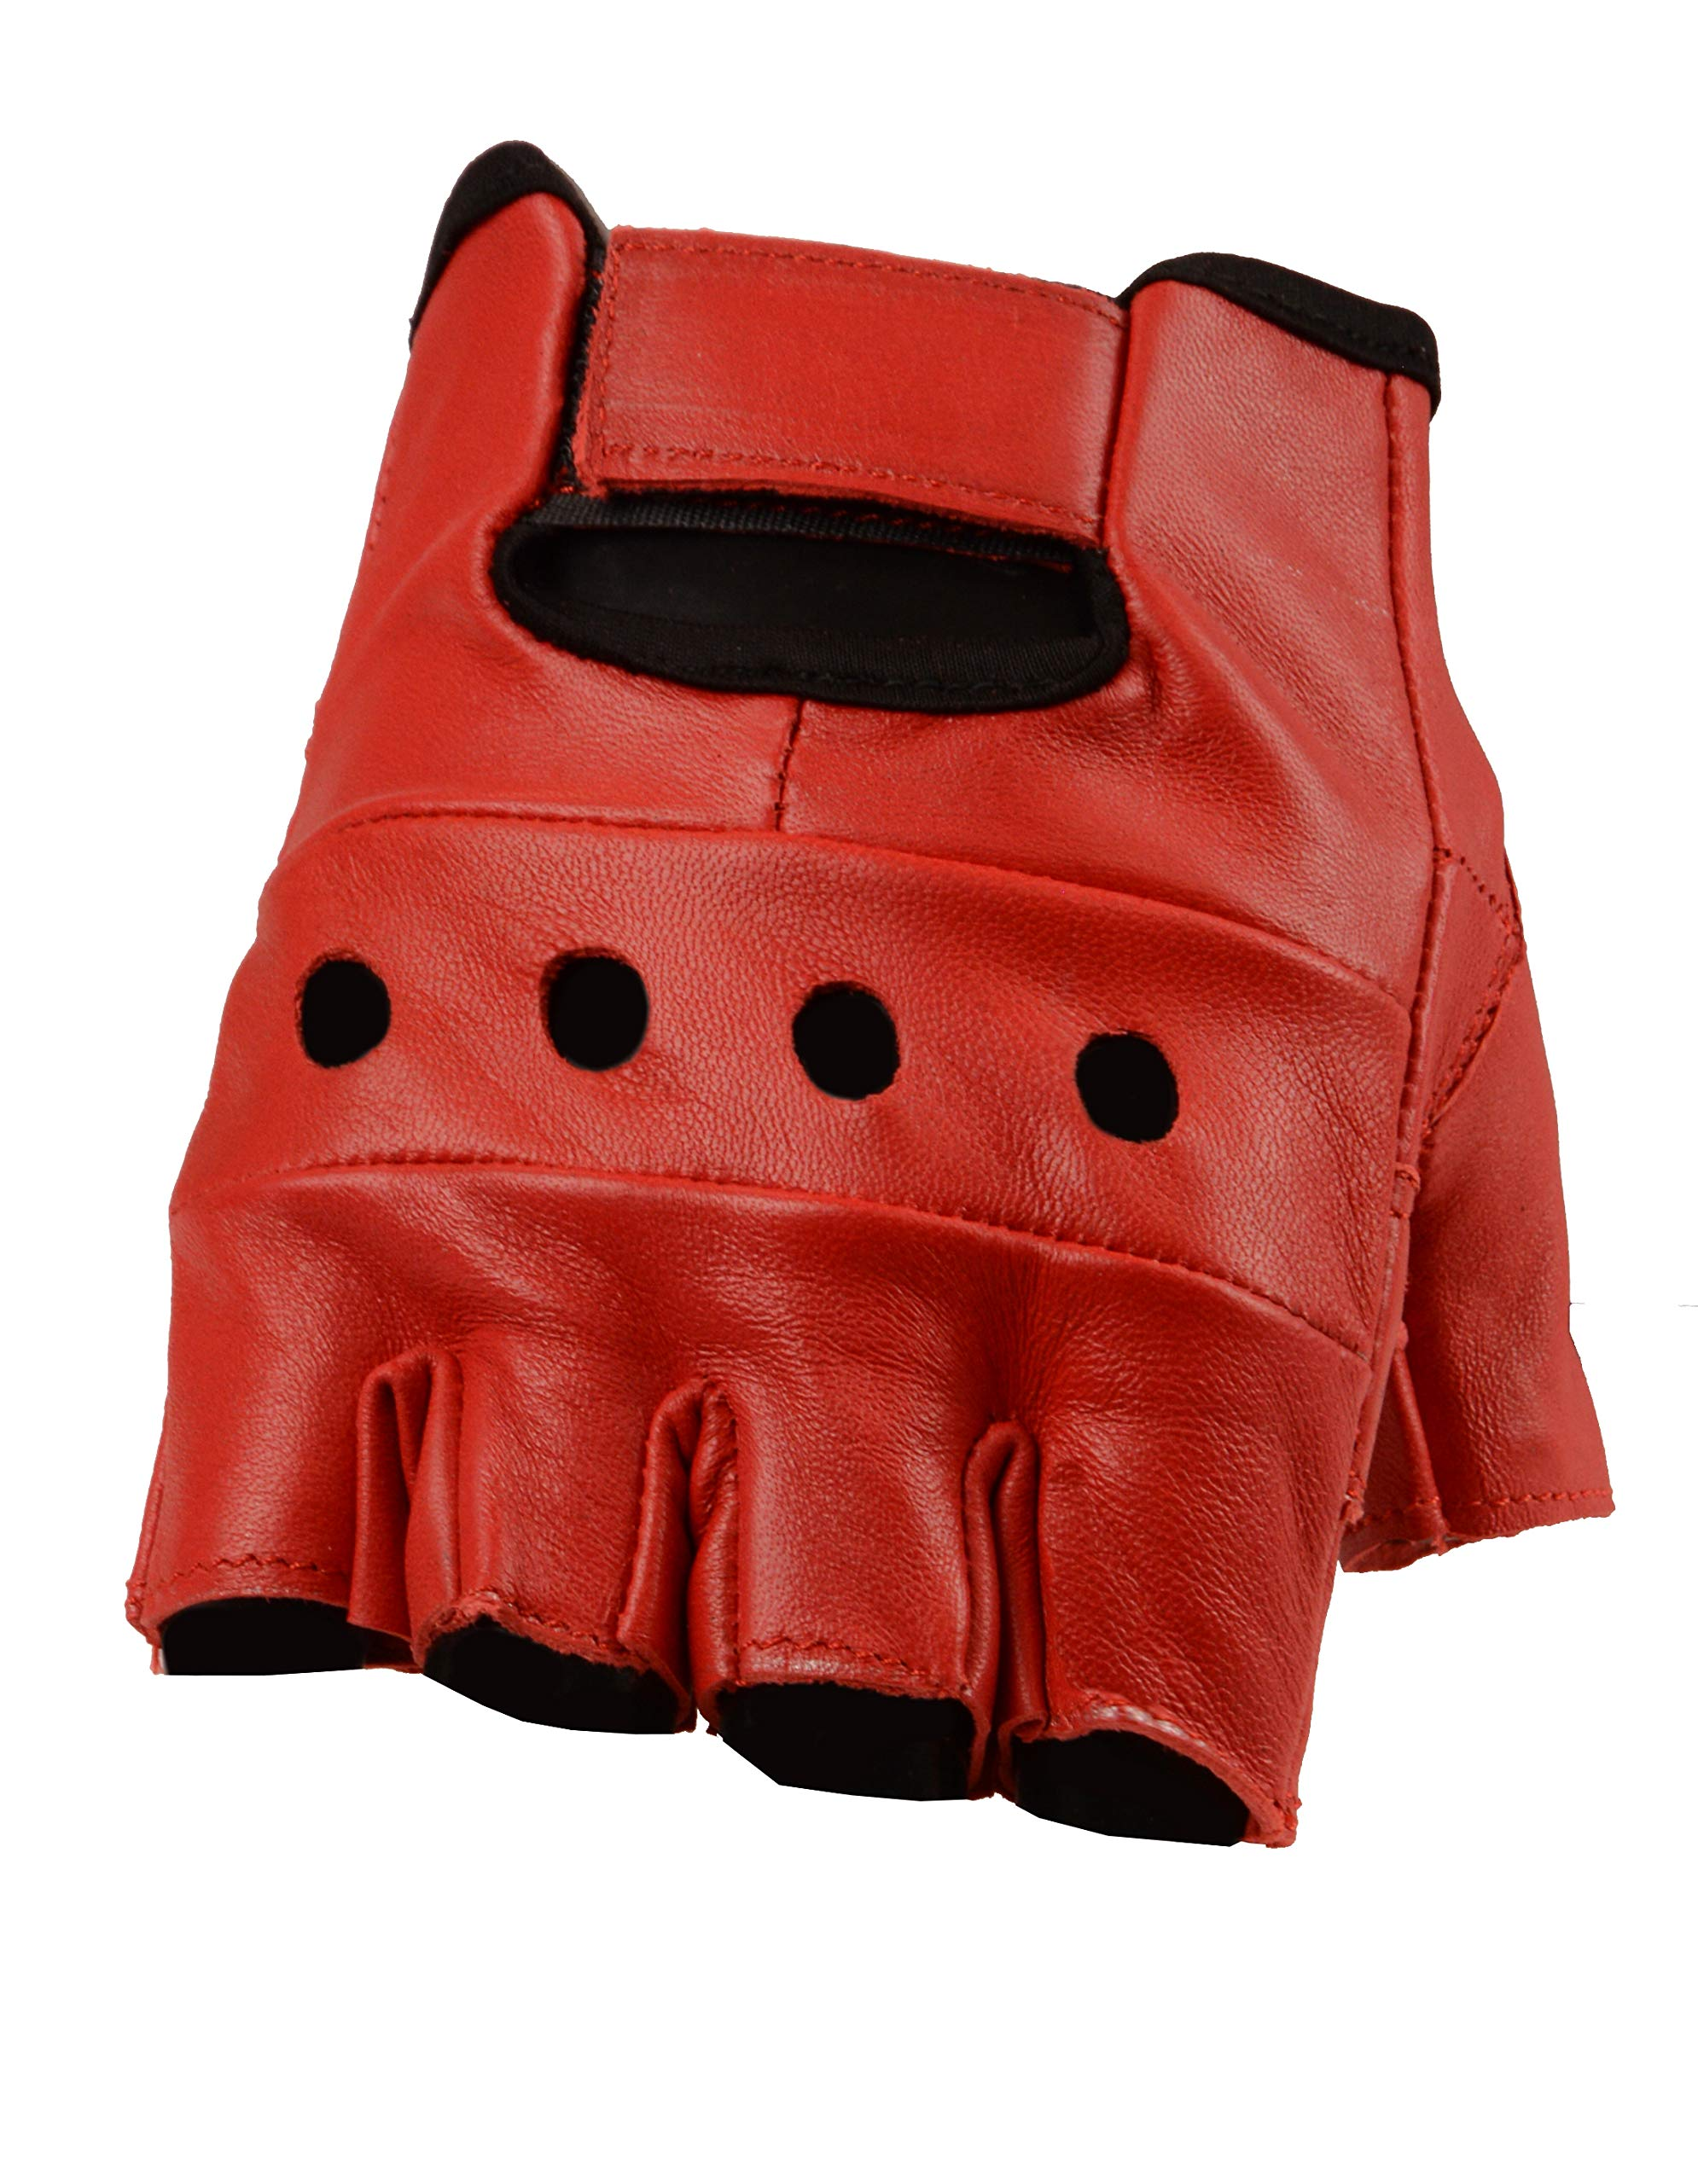 The Bikers Zone Women's Leather Fingerless Gloves, Soft Lambskin Leather (Red, M)